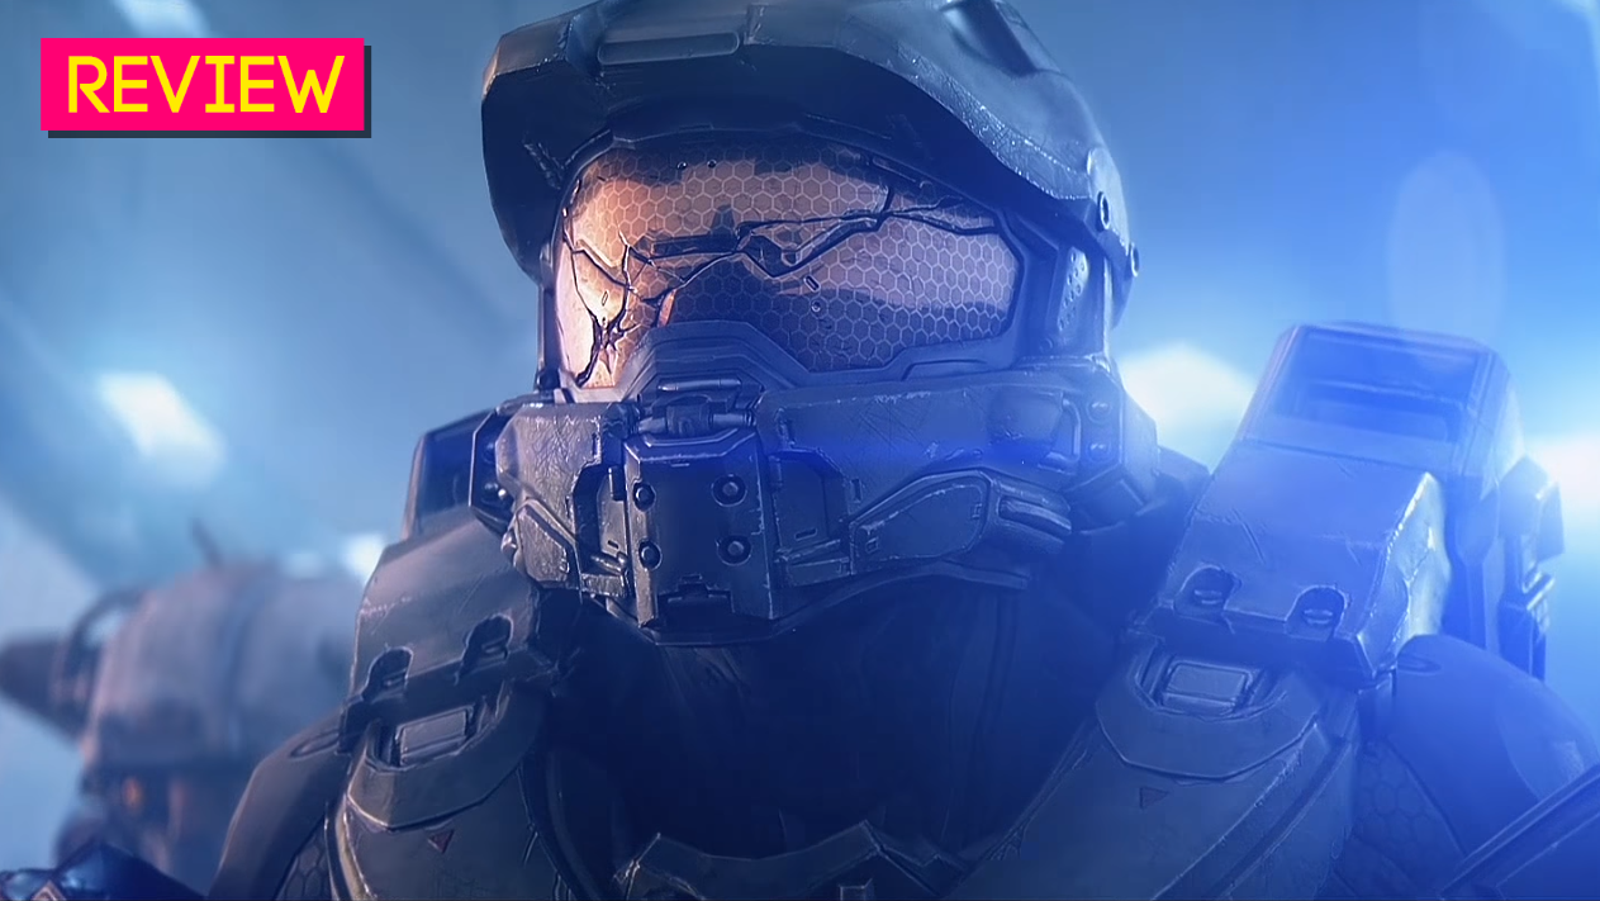 Halo 5: The Kotaku Re-Review